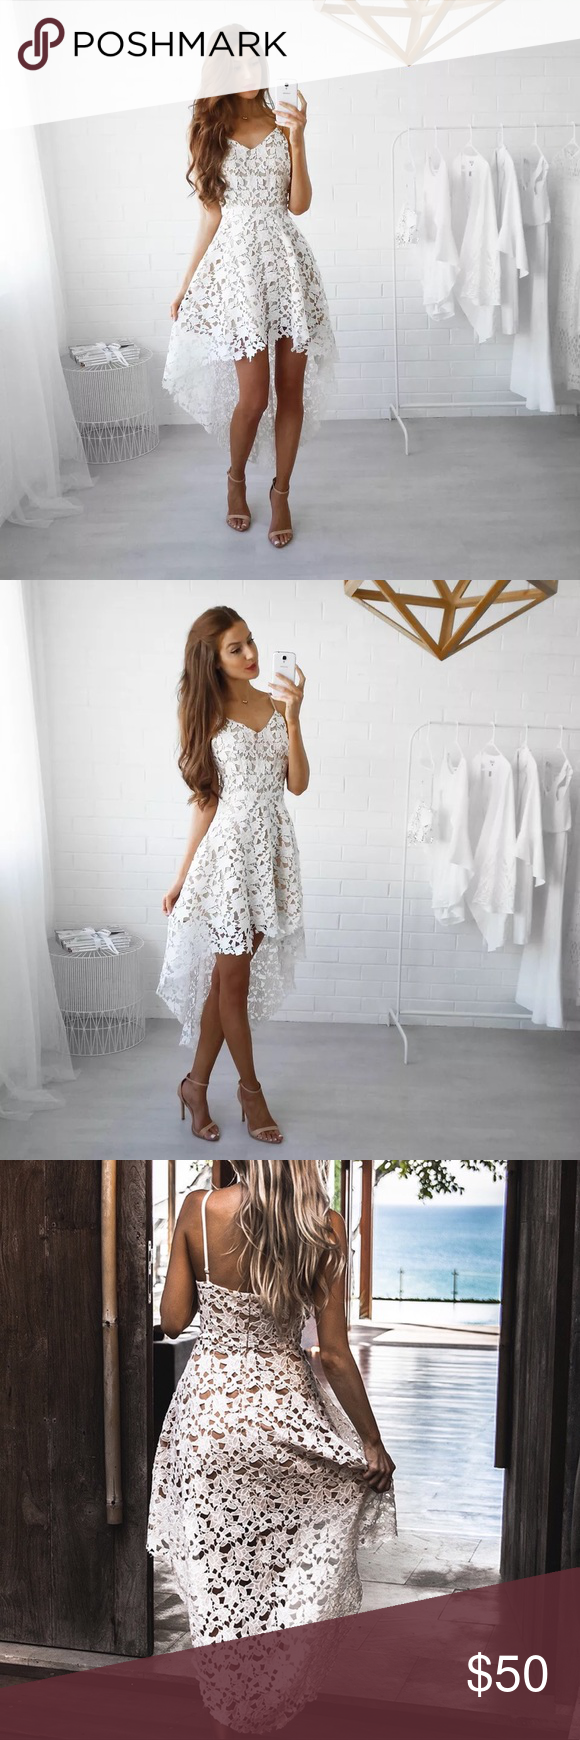 5 New White V Neck Lace High Low Dress Lace White Dress Floral Lace Dress Knit Lace Dress [ 1740 x 580 Pixel ]